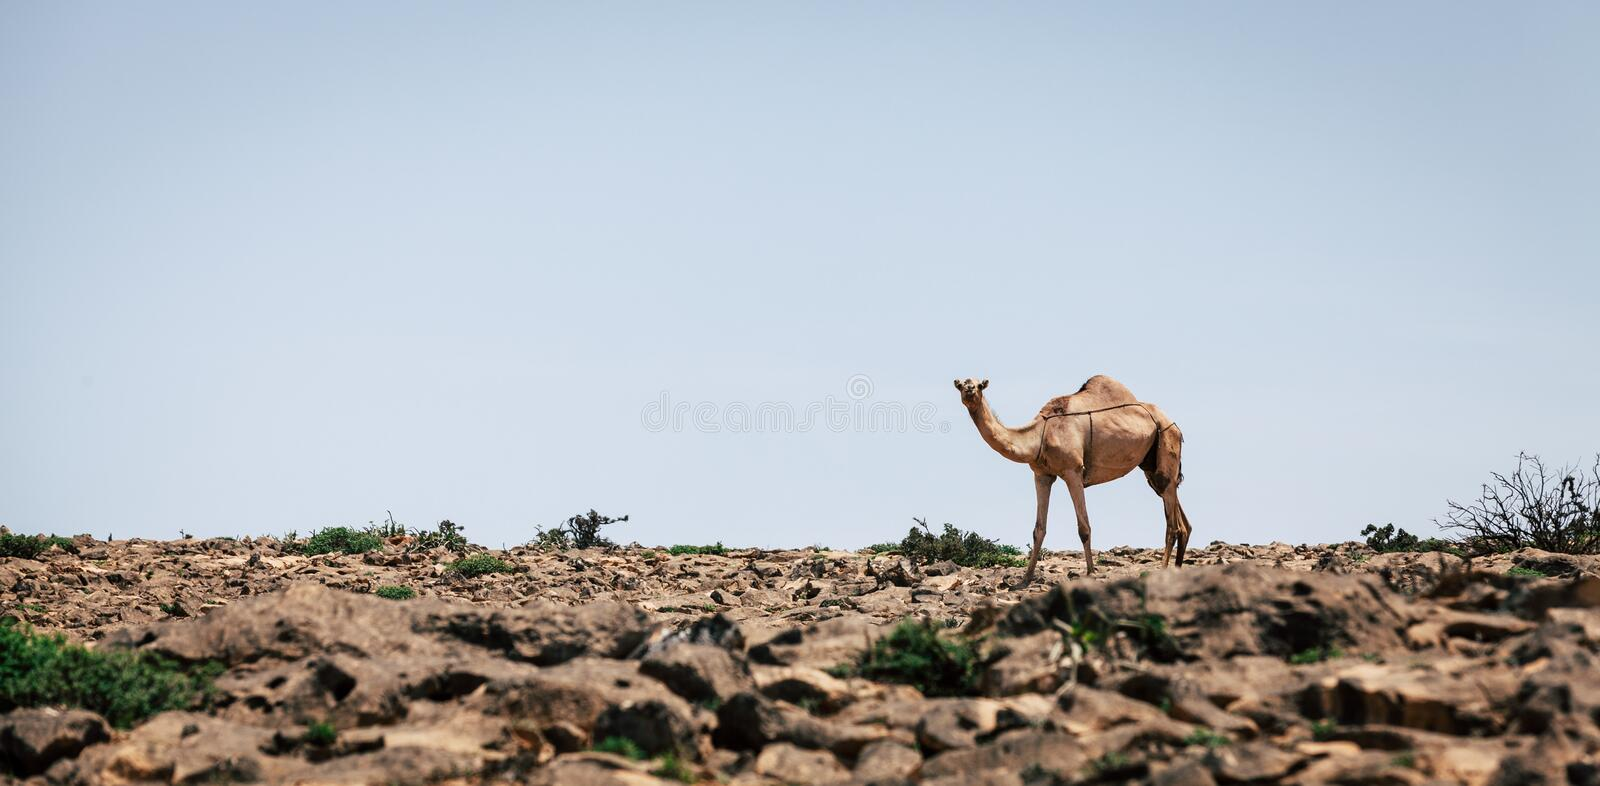 Camel in a desert in Oman royalty free stock photography